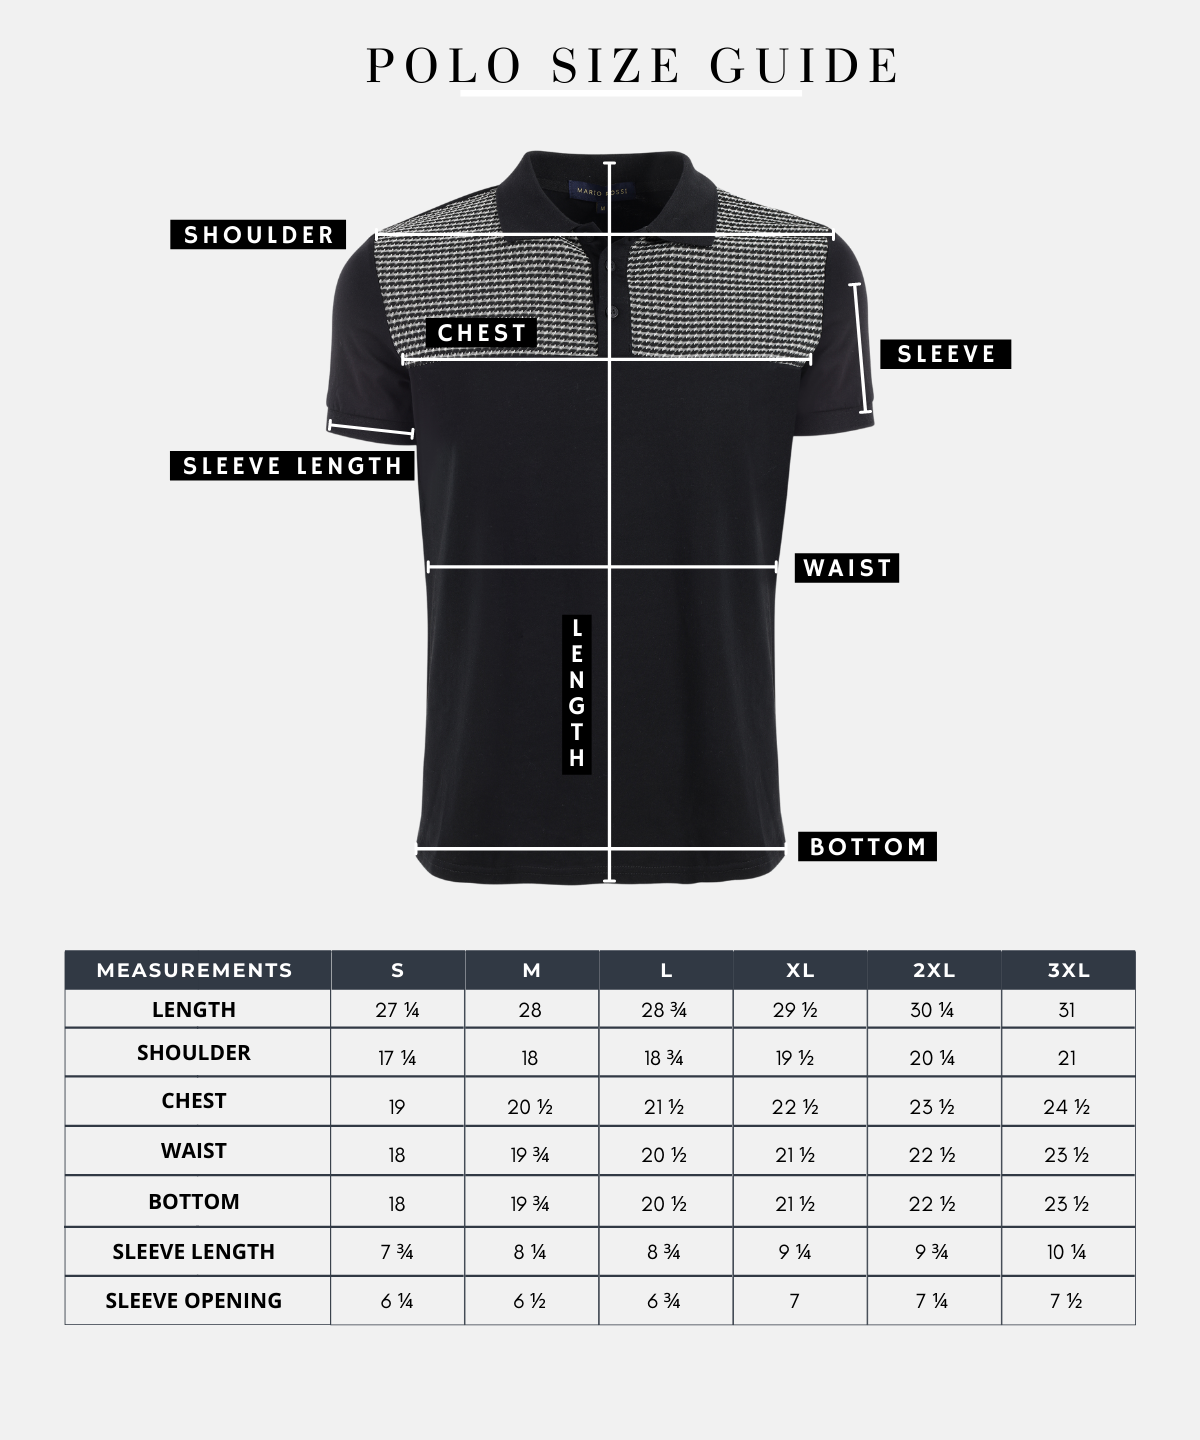 Marina Imports- Mario Rossi, Men's Polo Shirts Size Guide